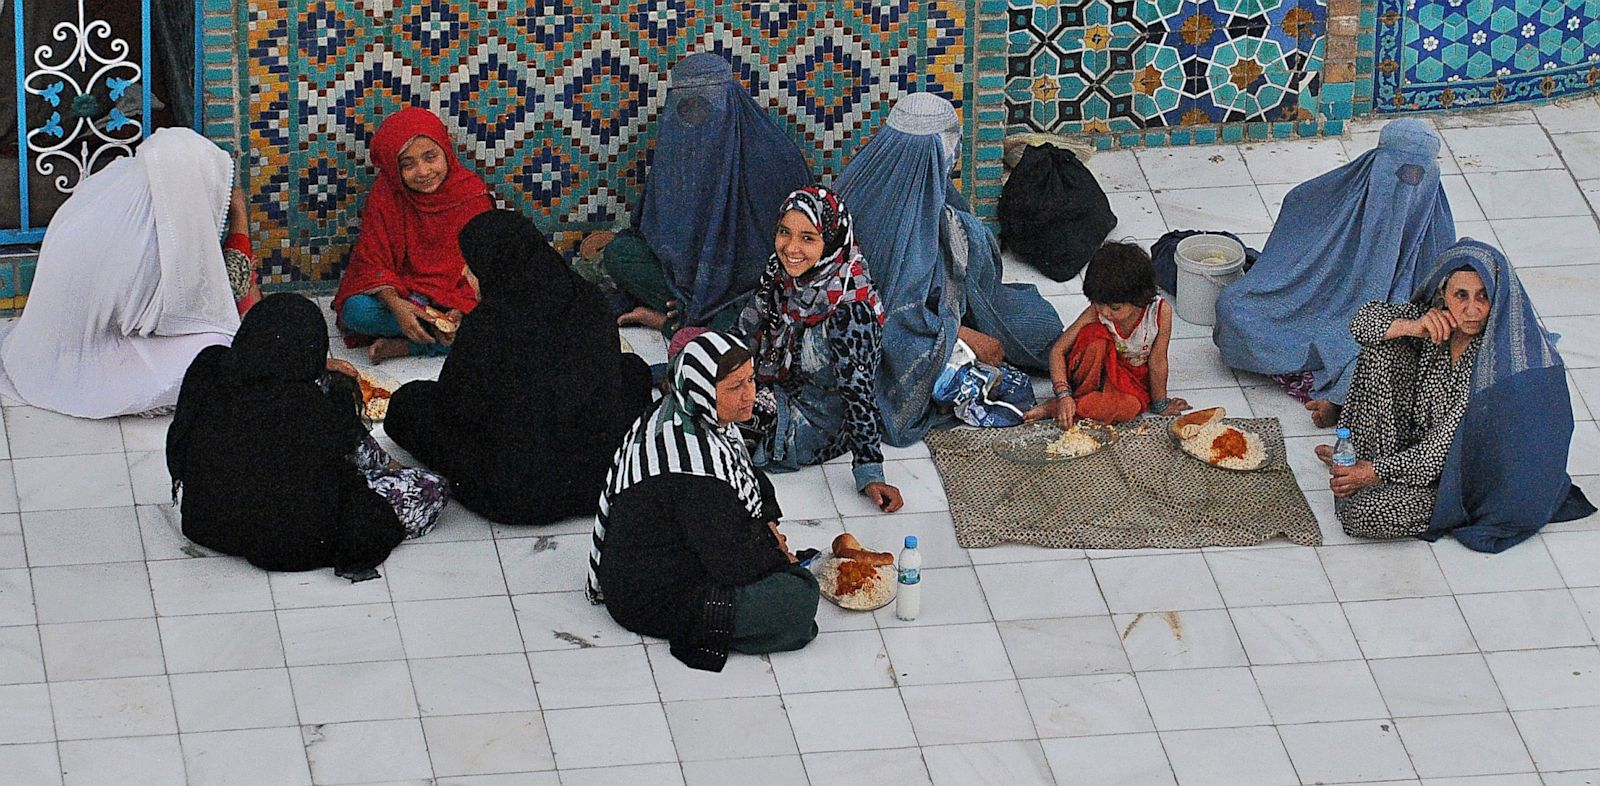 PHOTO: Afghan women wait to break their fast during the holy month of Ramadan at the Hazrat-e Ali shrine in Mazar-i Sharif in northern of Afghanistan on July 17, 2013.